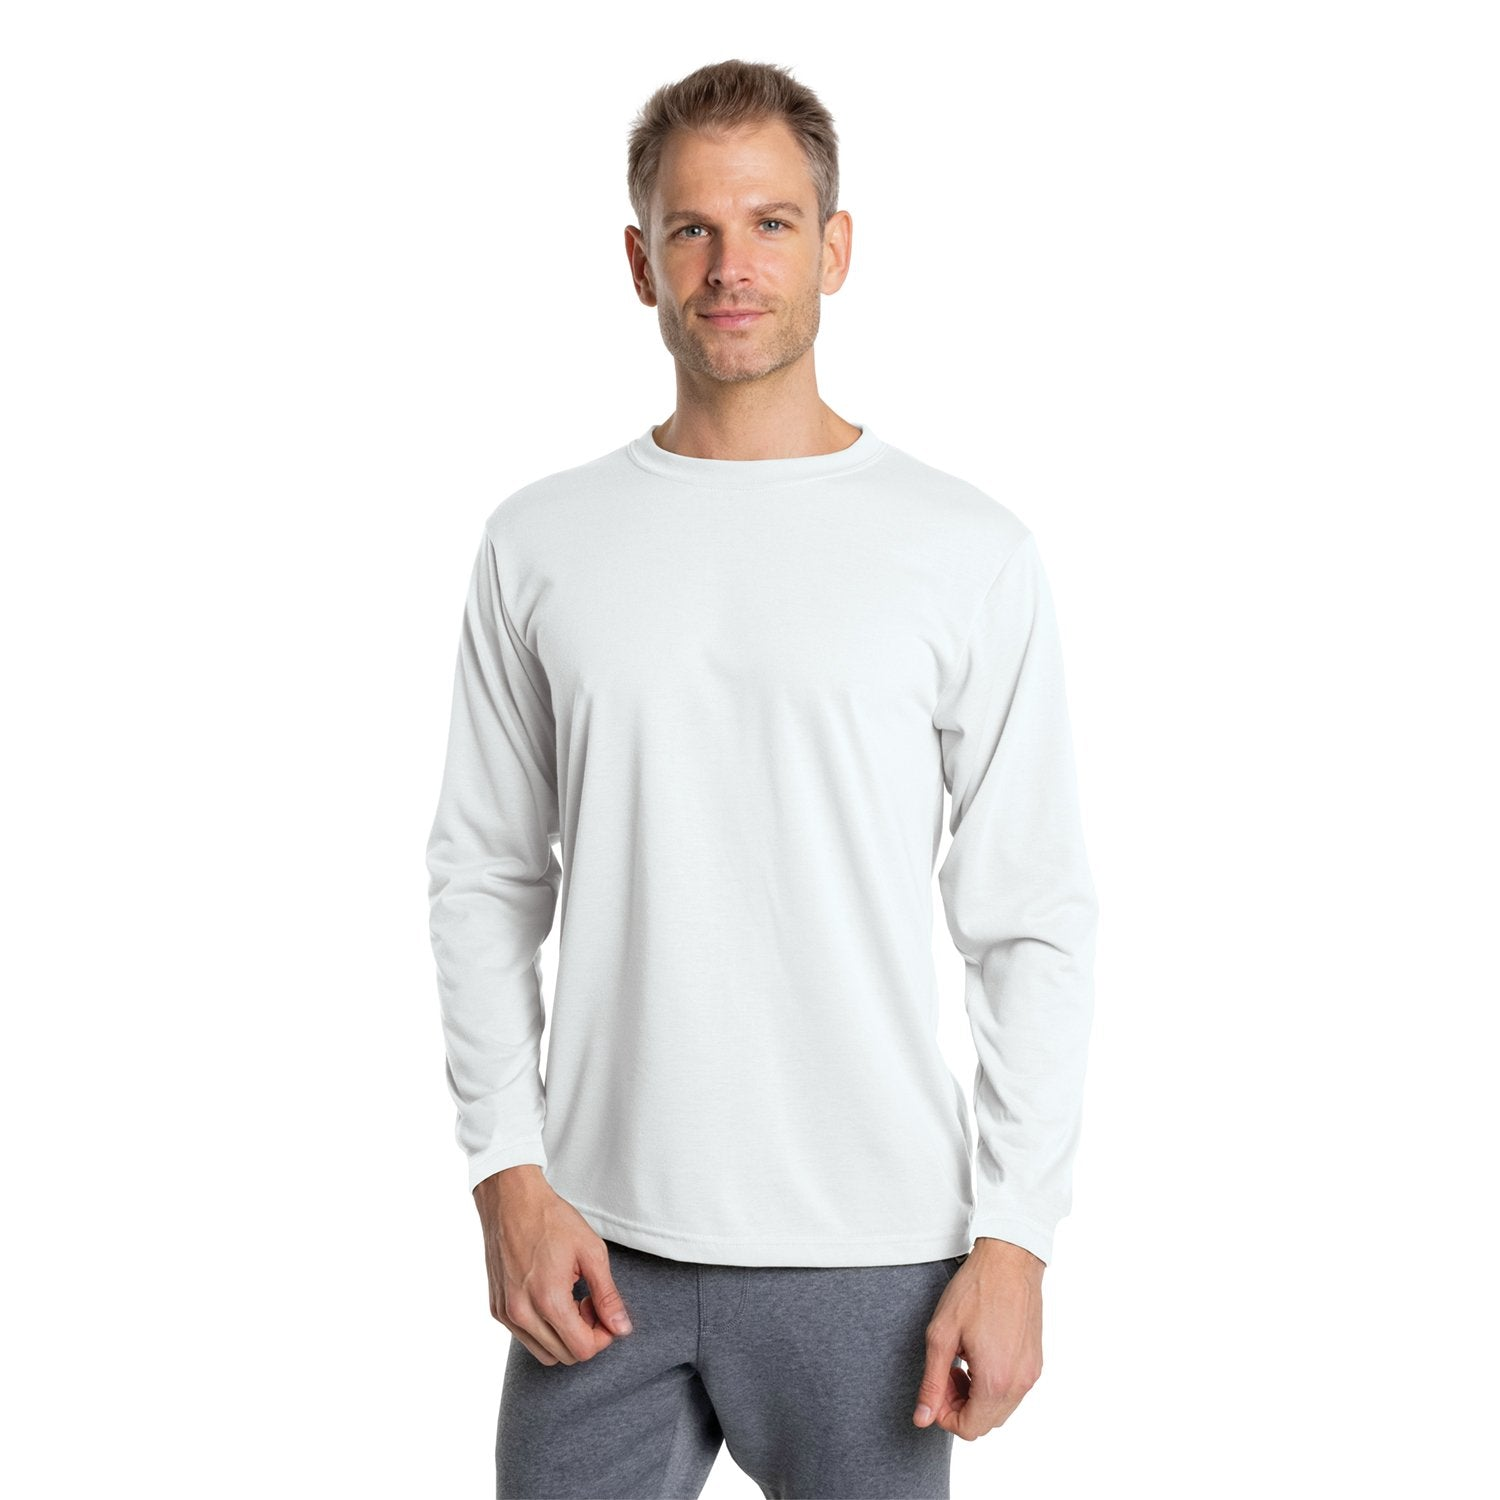 PT700WH Basic Tech Long Sleeve T-Shirt - White